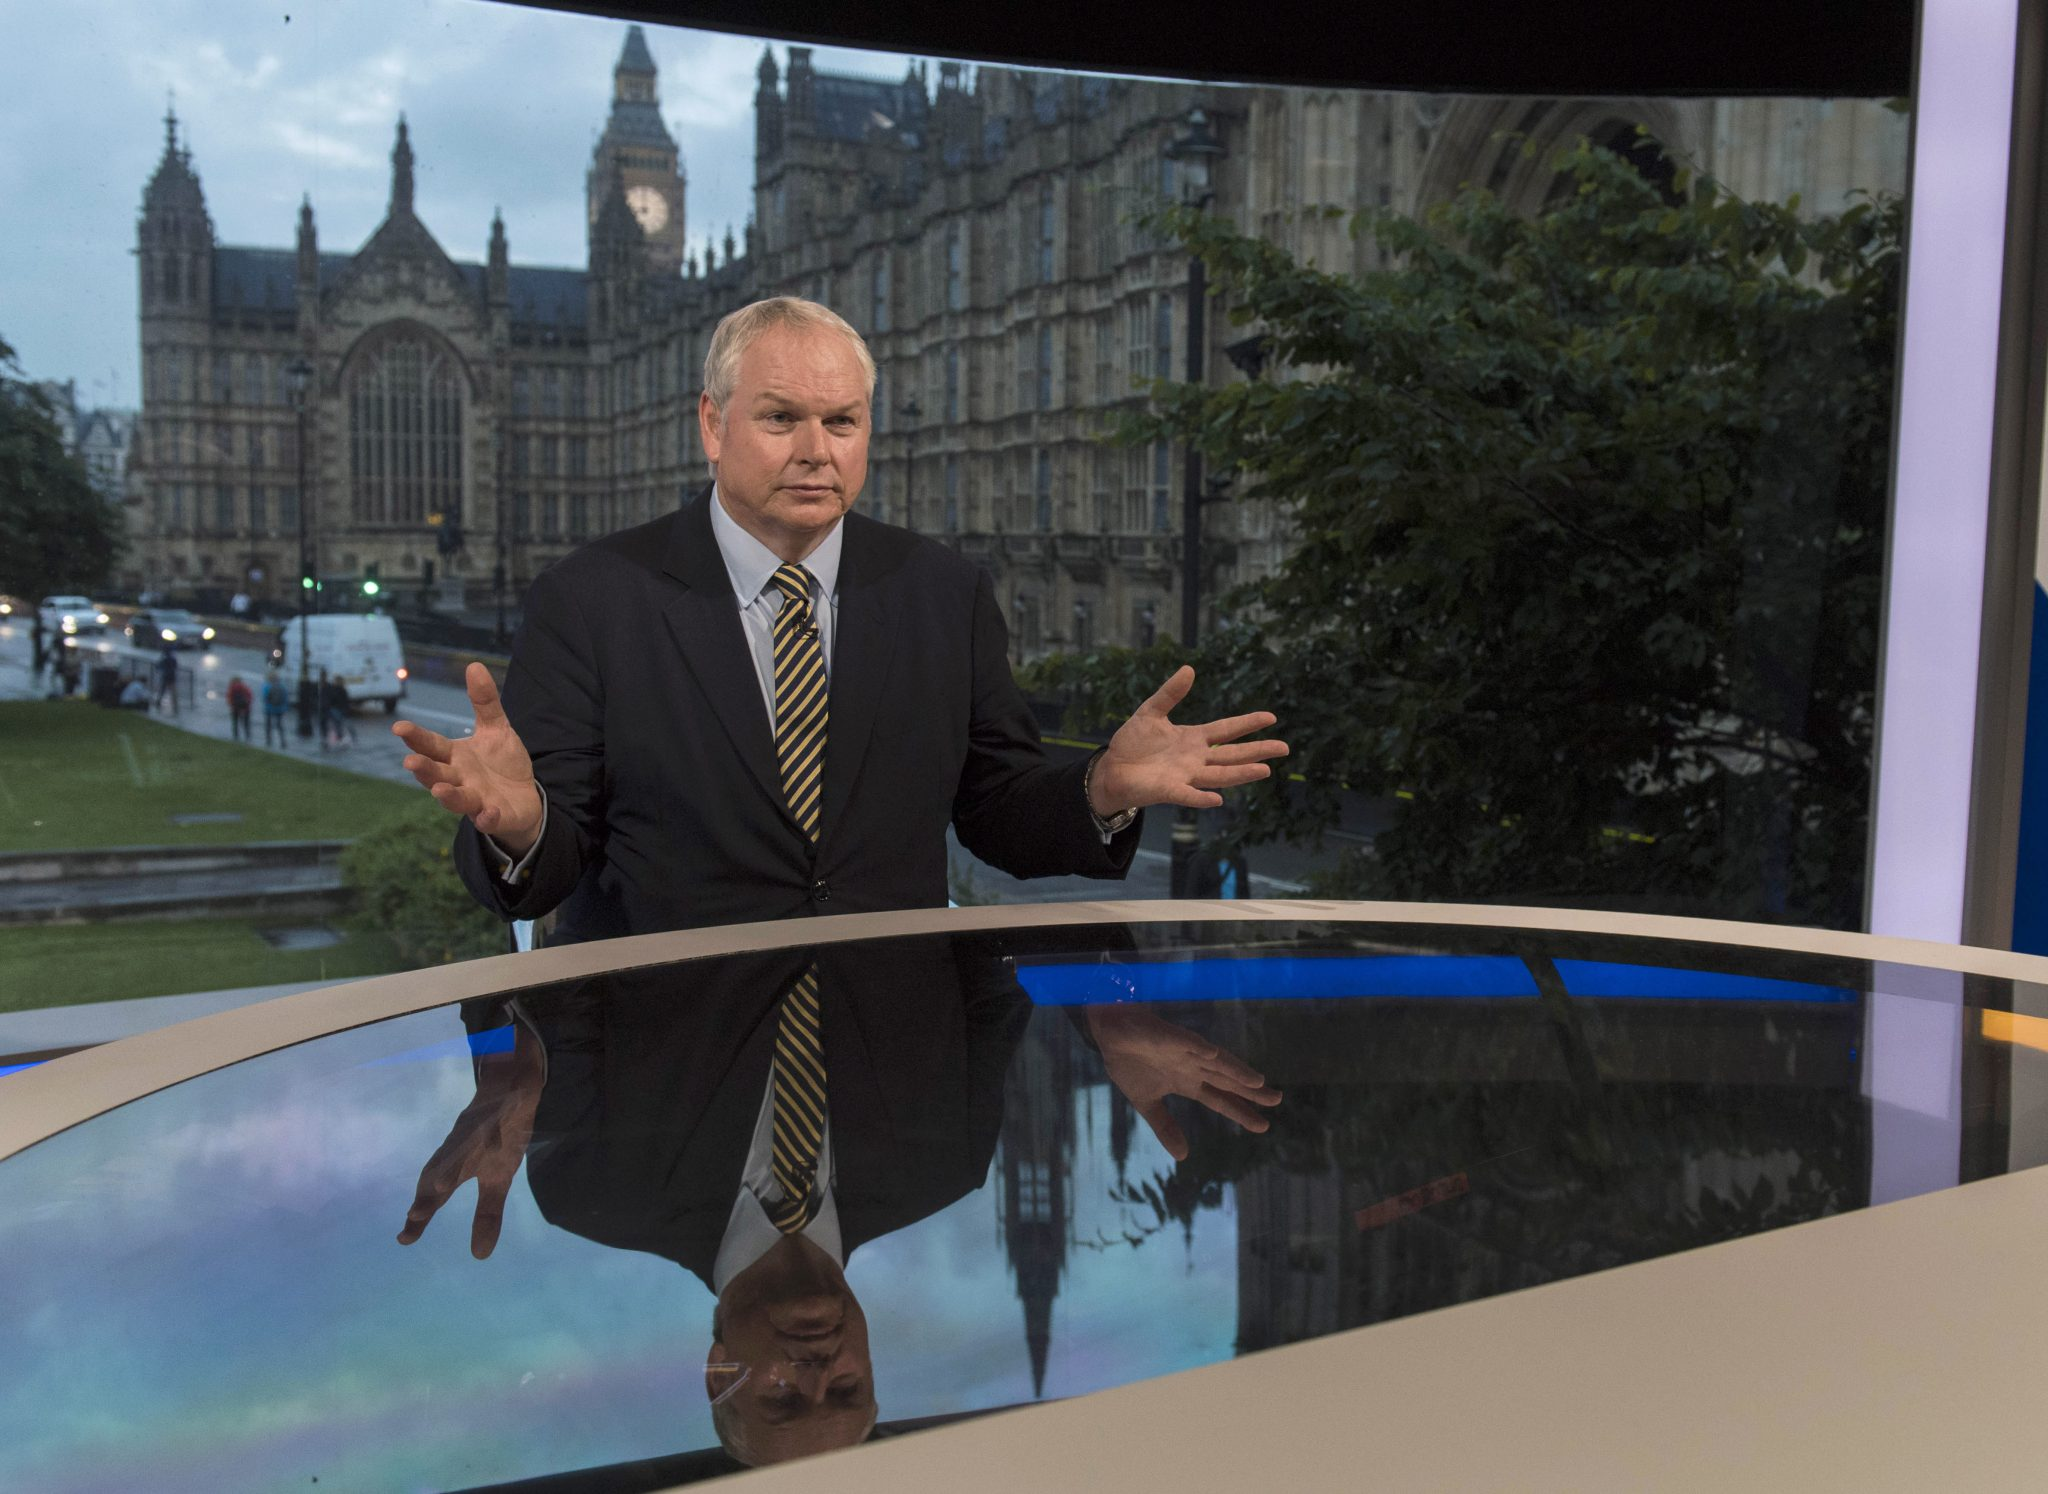 In this handout image provided by Sky News, Adam Boulton prepares to deliver the referendum results on June 23, 2016 in London, England. (Photo by Chris Lobina/Sky News via Getty Images)